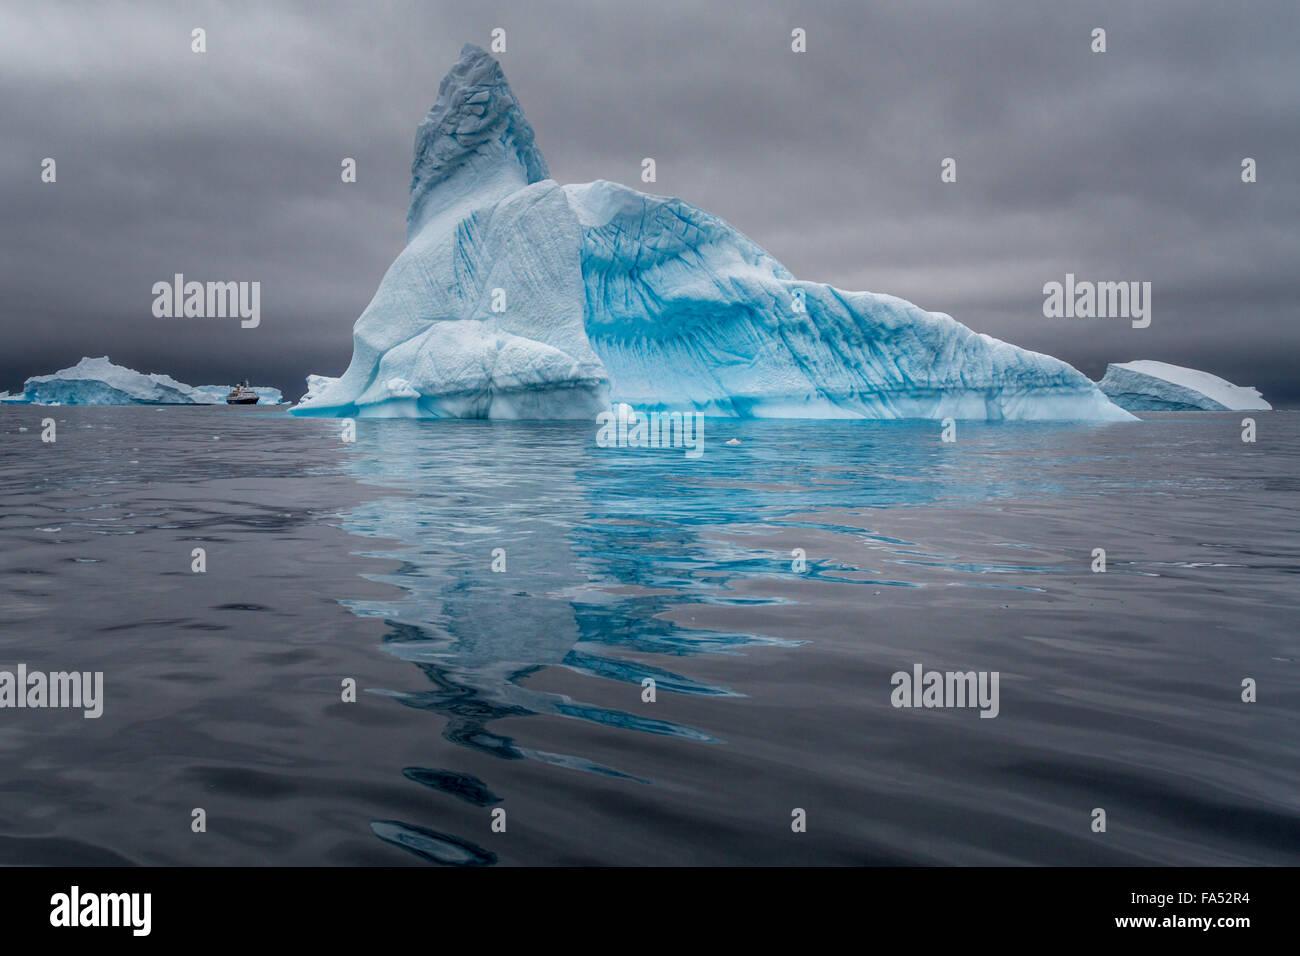 Huge iceberg with a cruise ship for size comparison, set off vibrantly against the moody sky, Antarctica - Stock Image